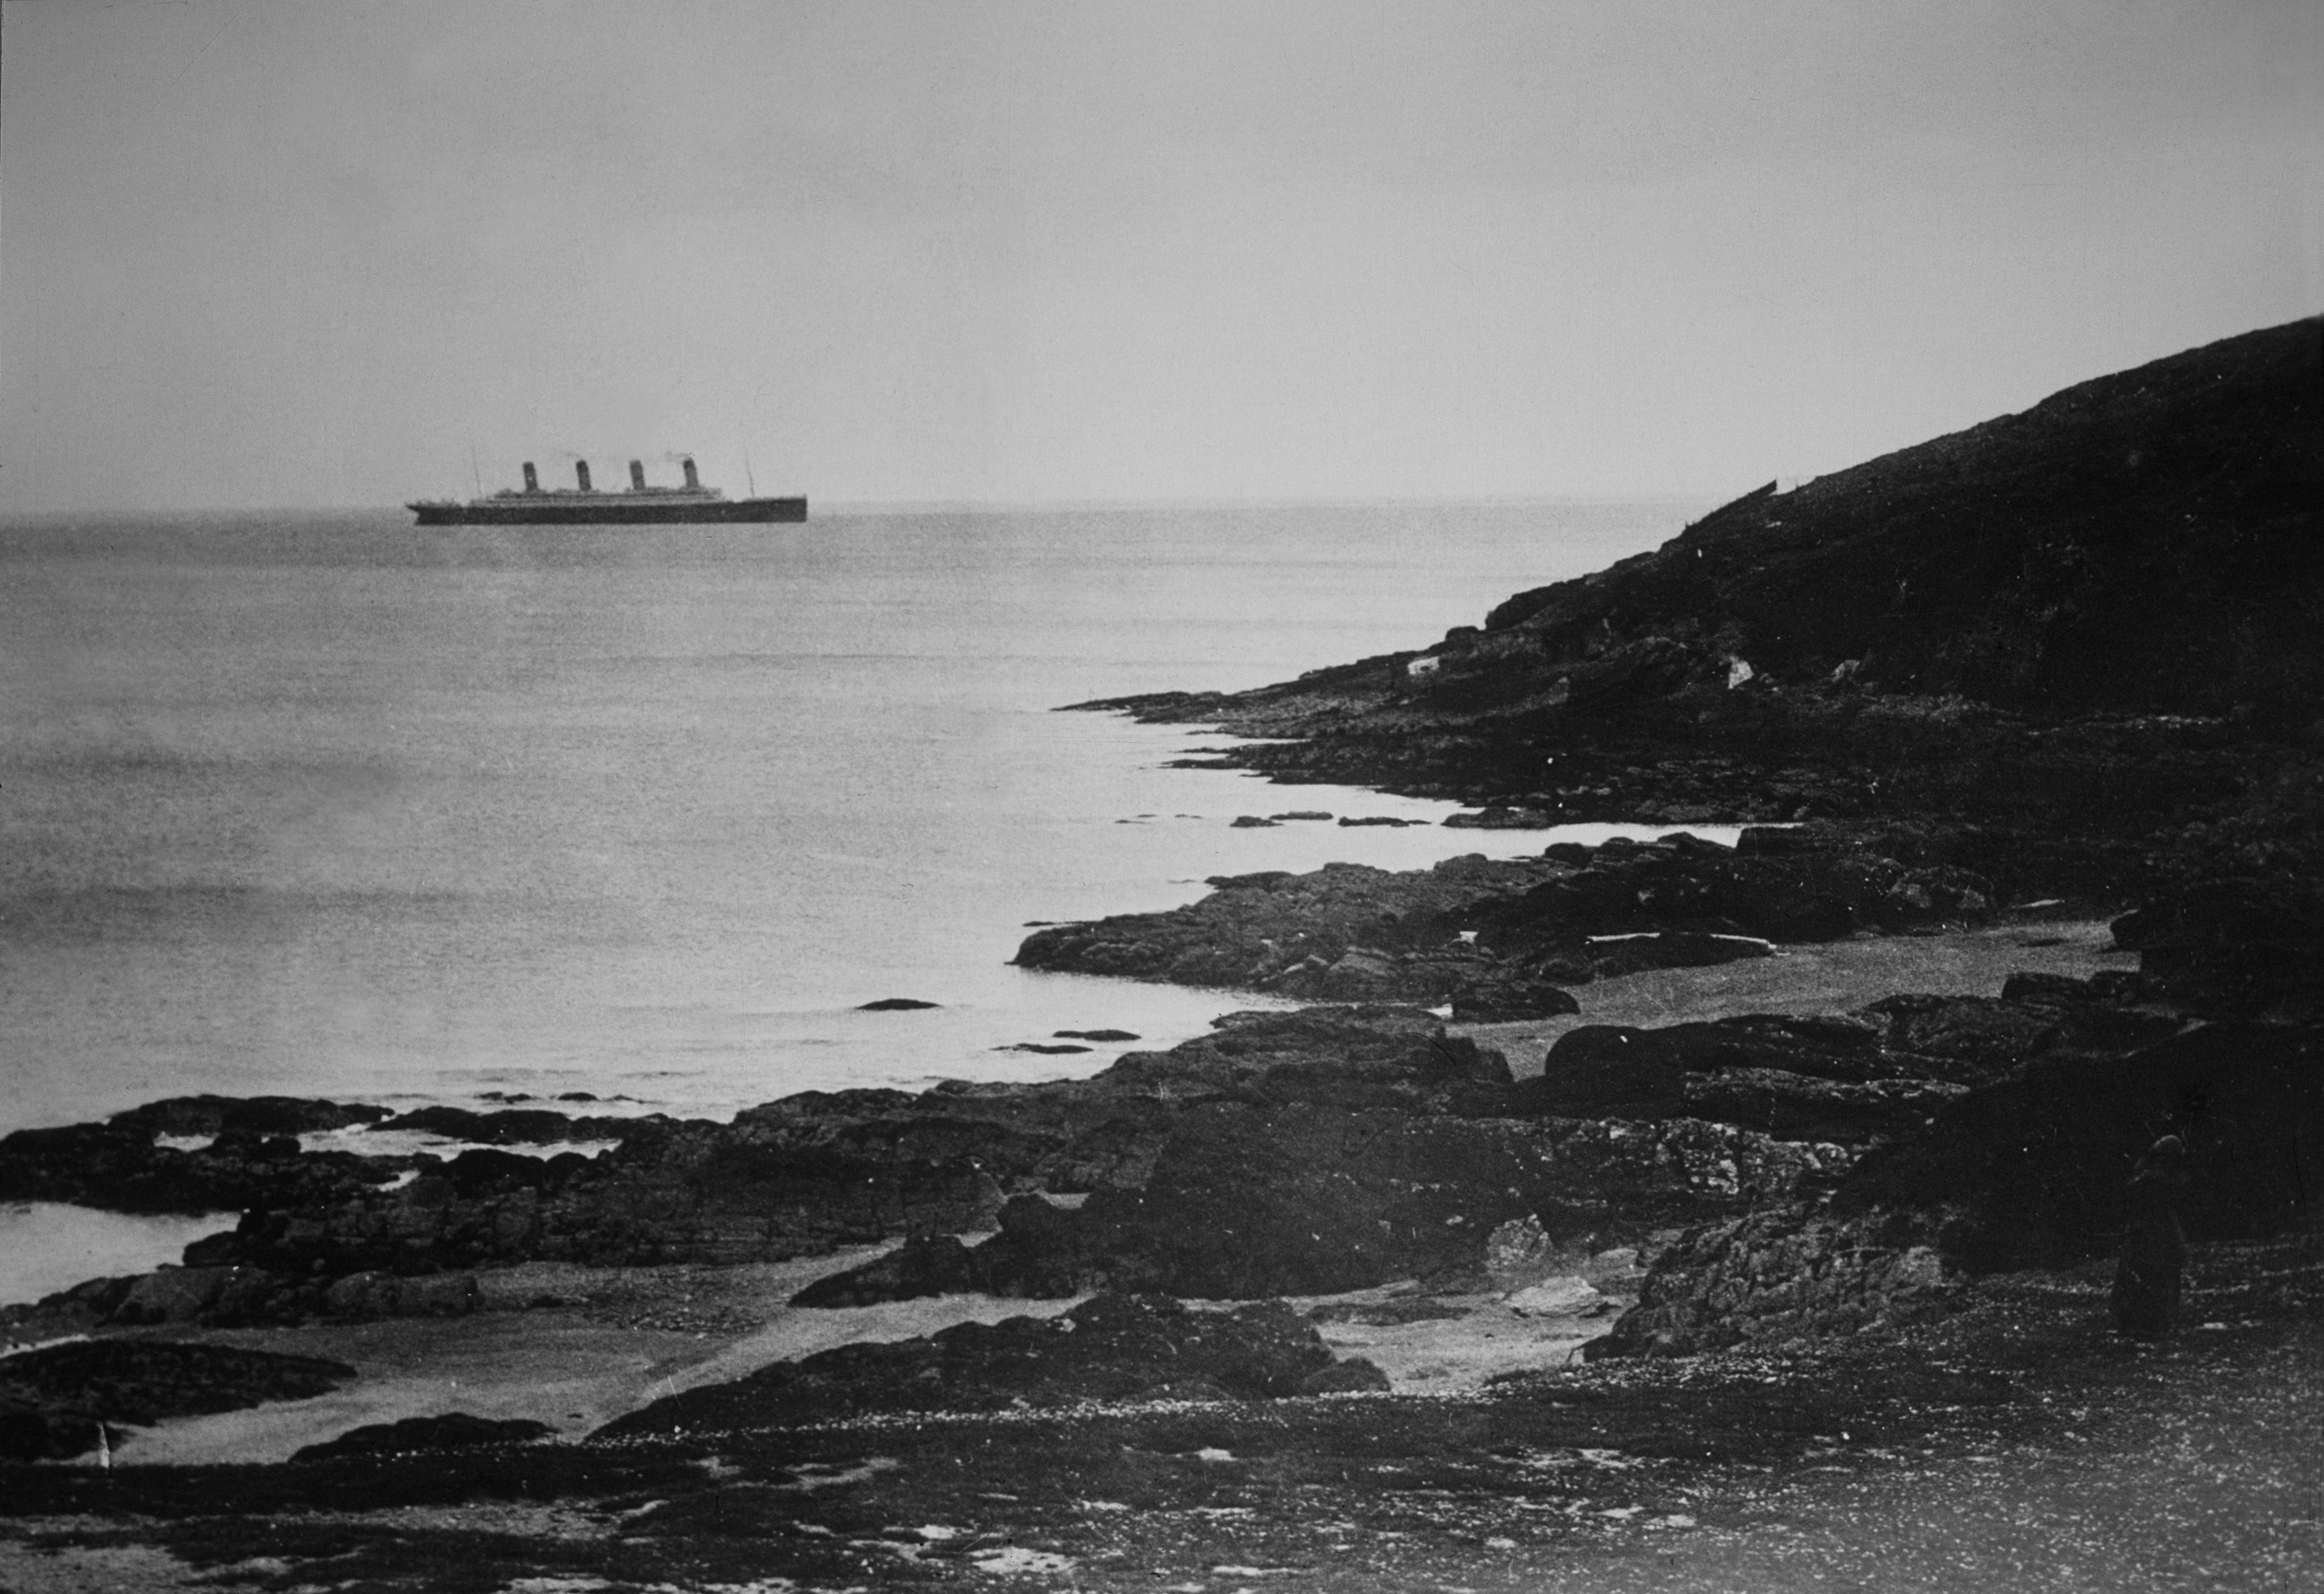 The Titanic sails away from her final landfall in Ireland on her maiden voyage across the Atlantic to New York.